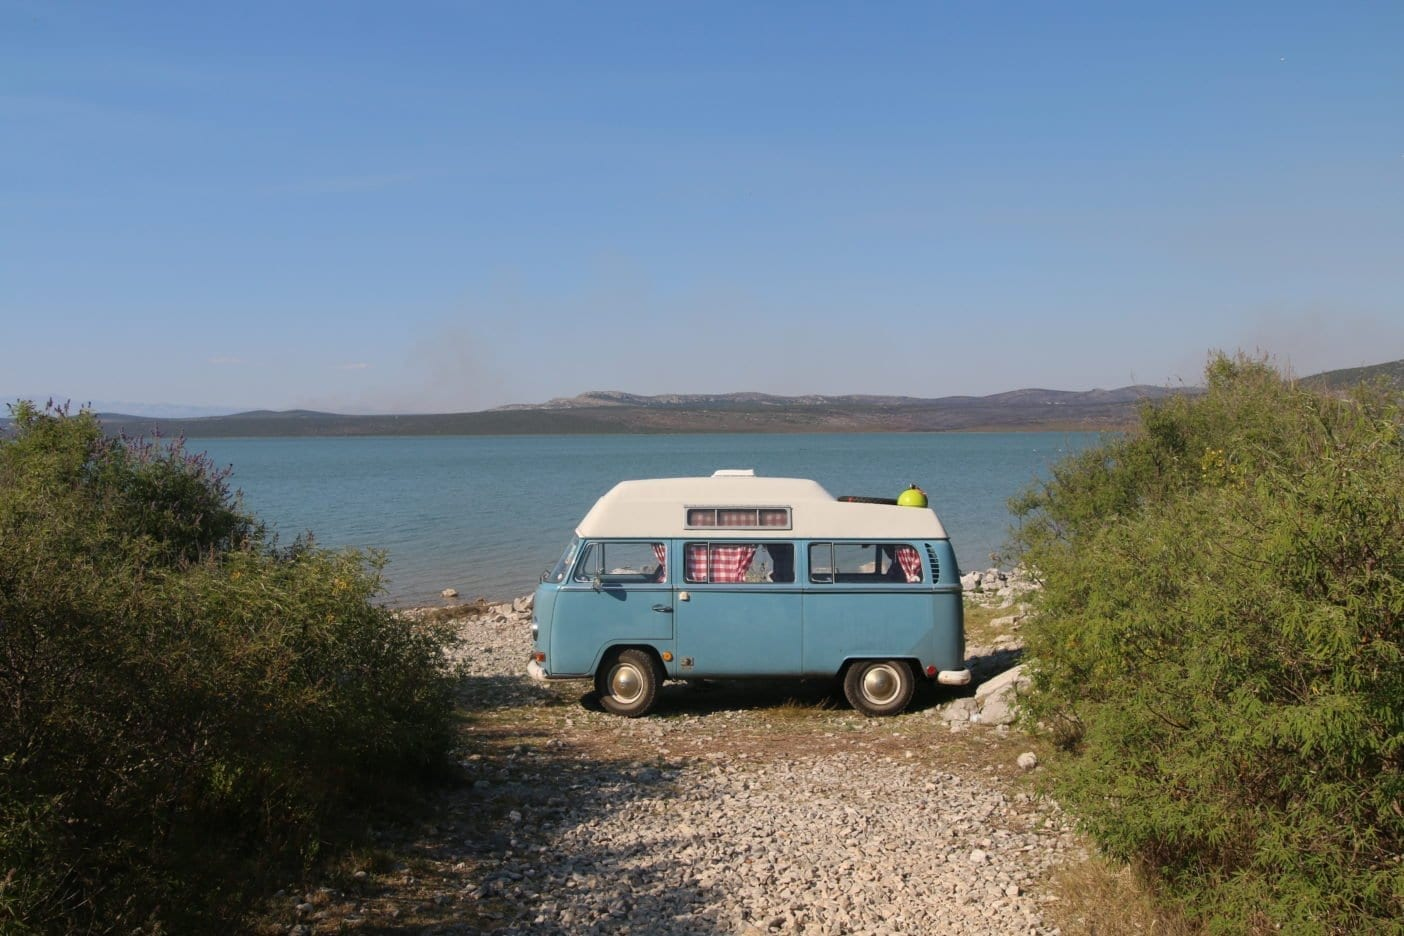 Vw-T2-Bulli-VW-Camper-Van-Campervan-camping-beach-vanlife-vacations